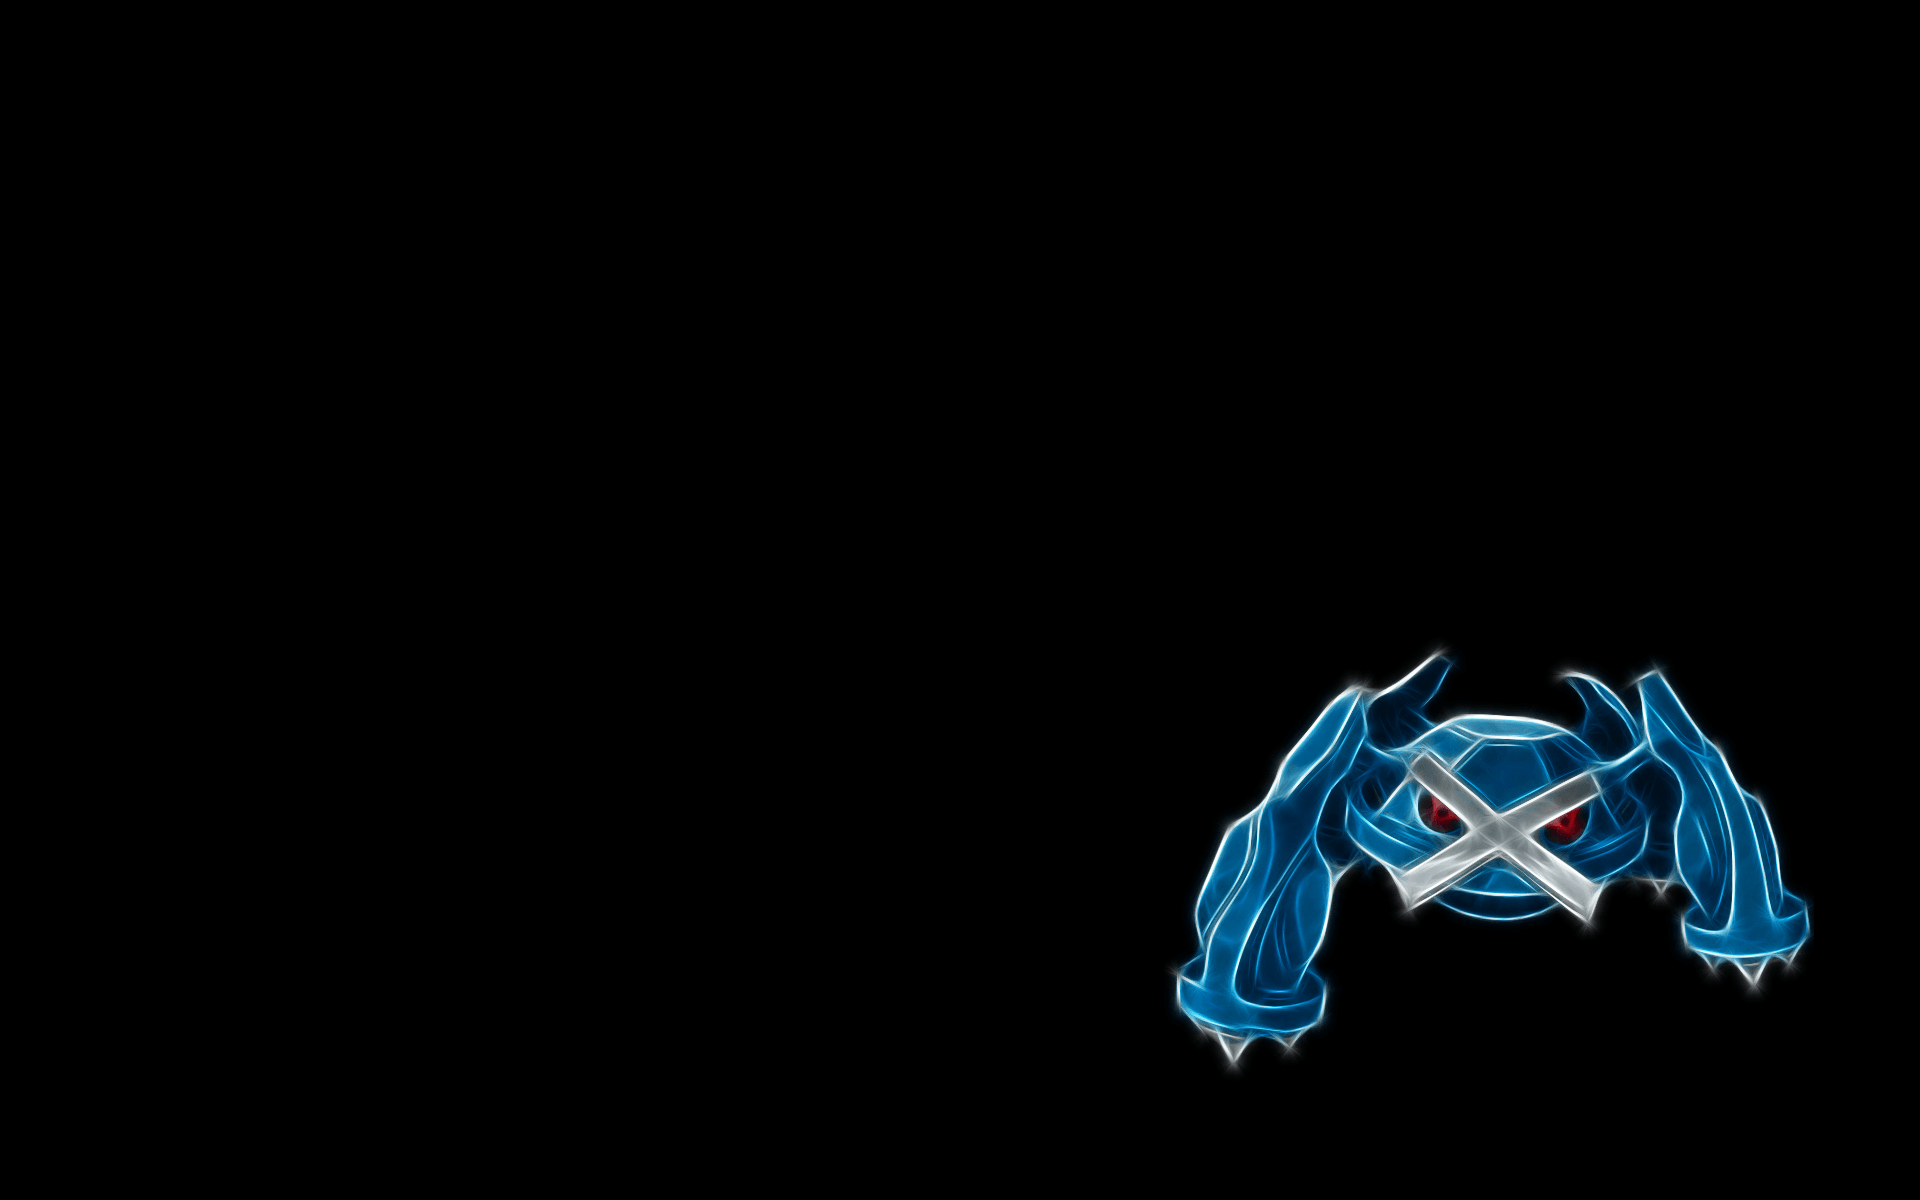 Pokemon, simple background, black background, Metagross